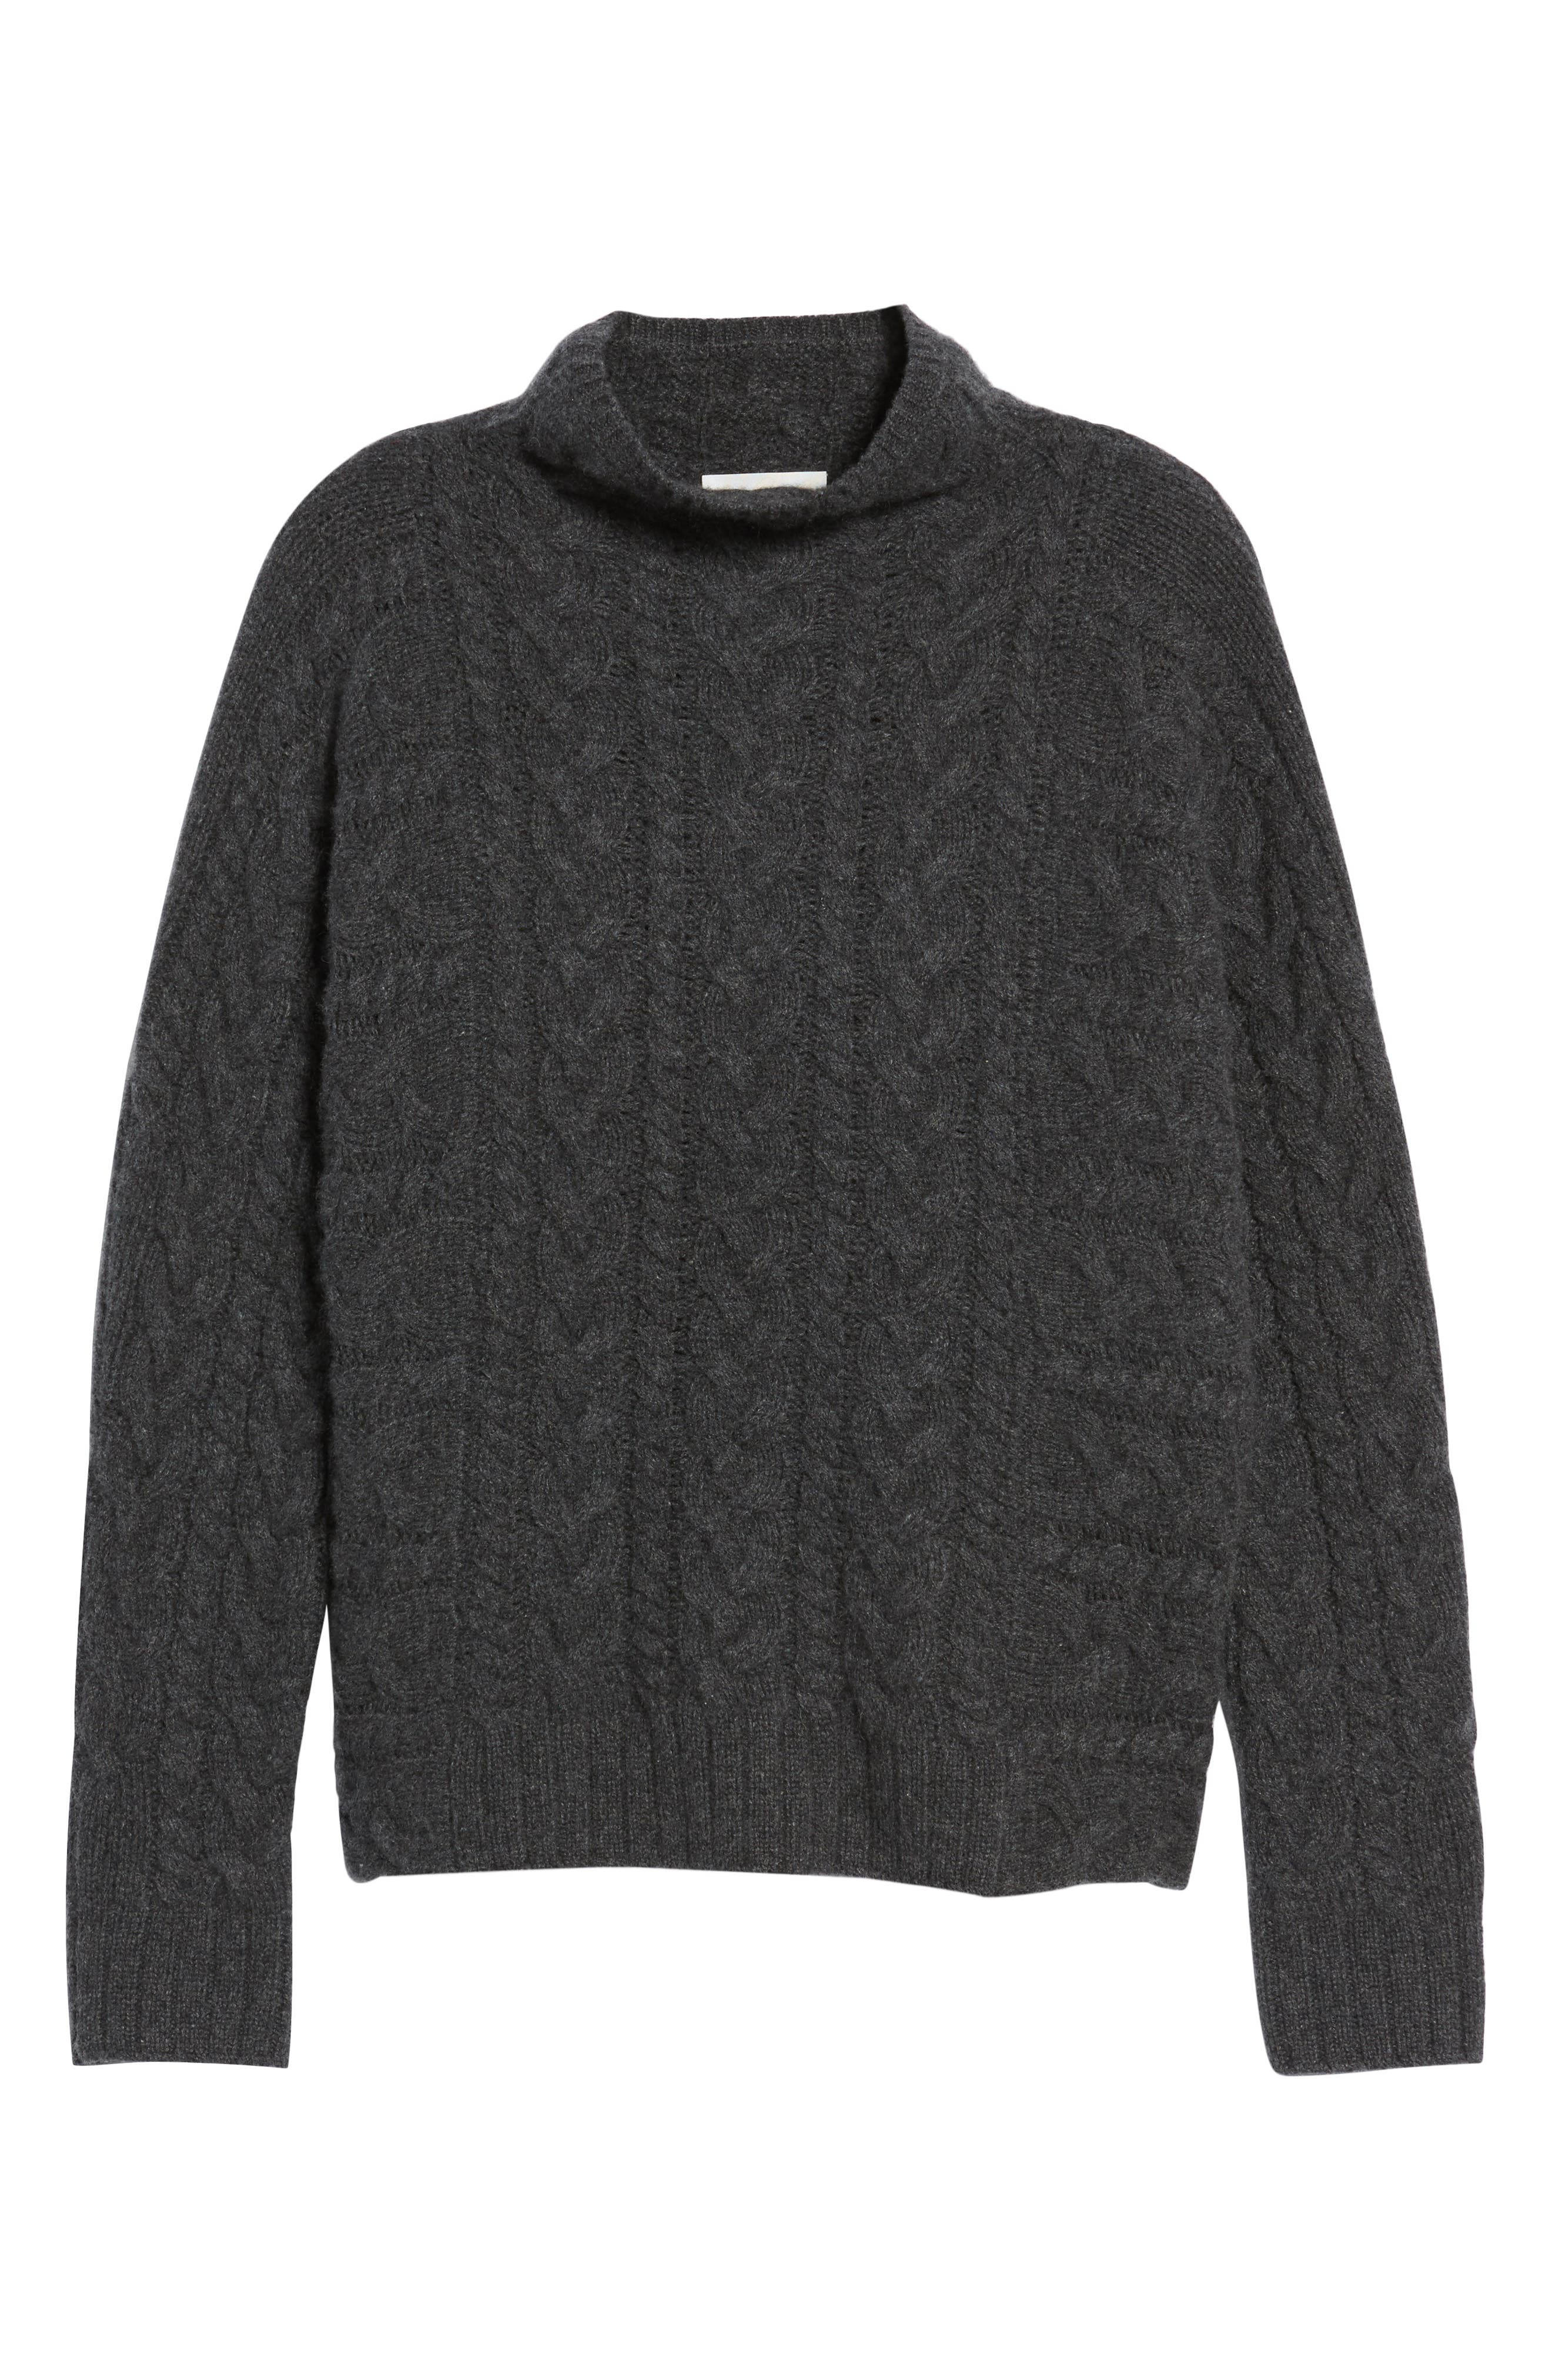 Cashmere Cable Sweater,                             Alternate thumbnail 6, color,                             021